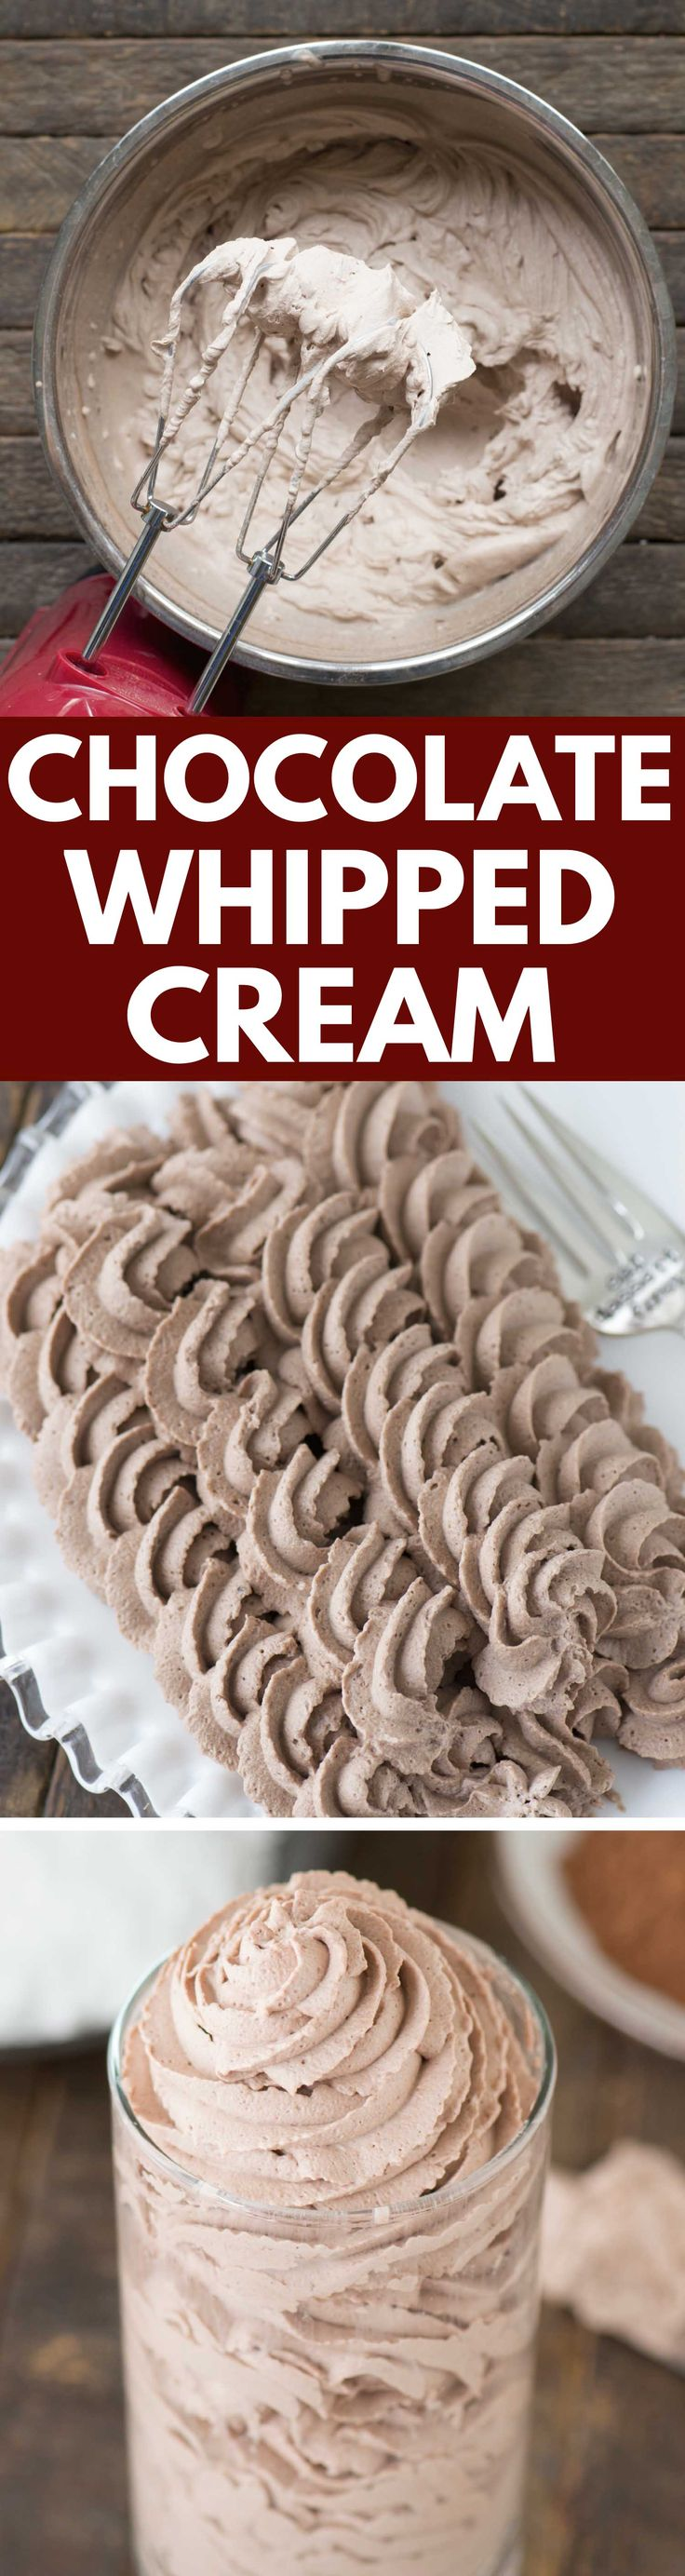 Learn how to make the easiest homemade chocolate whipped cream with only 3 ingredients!